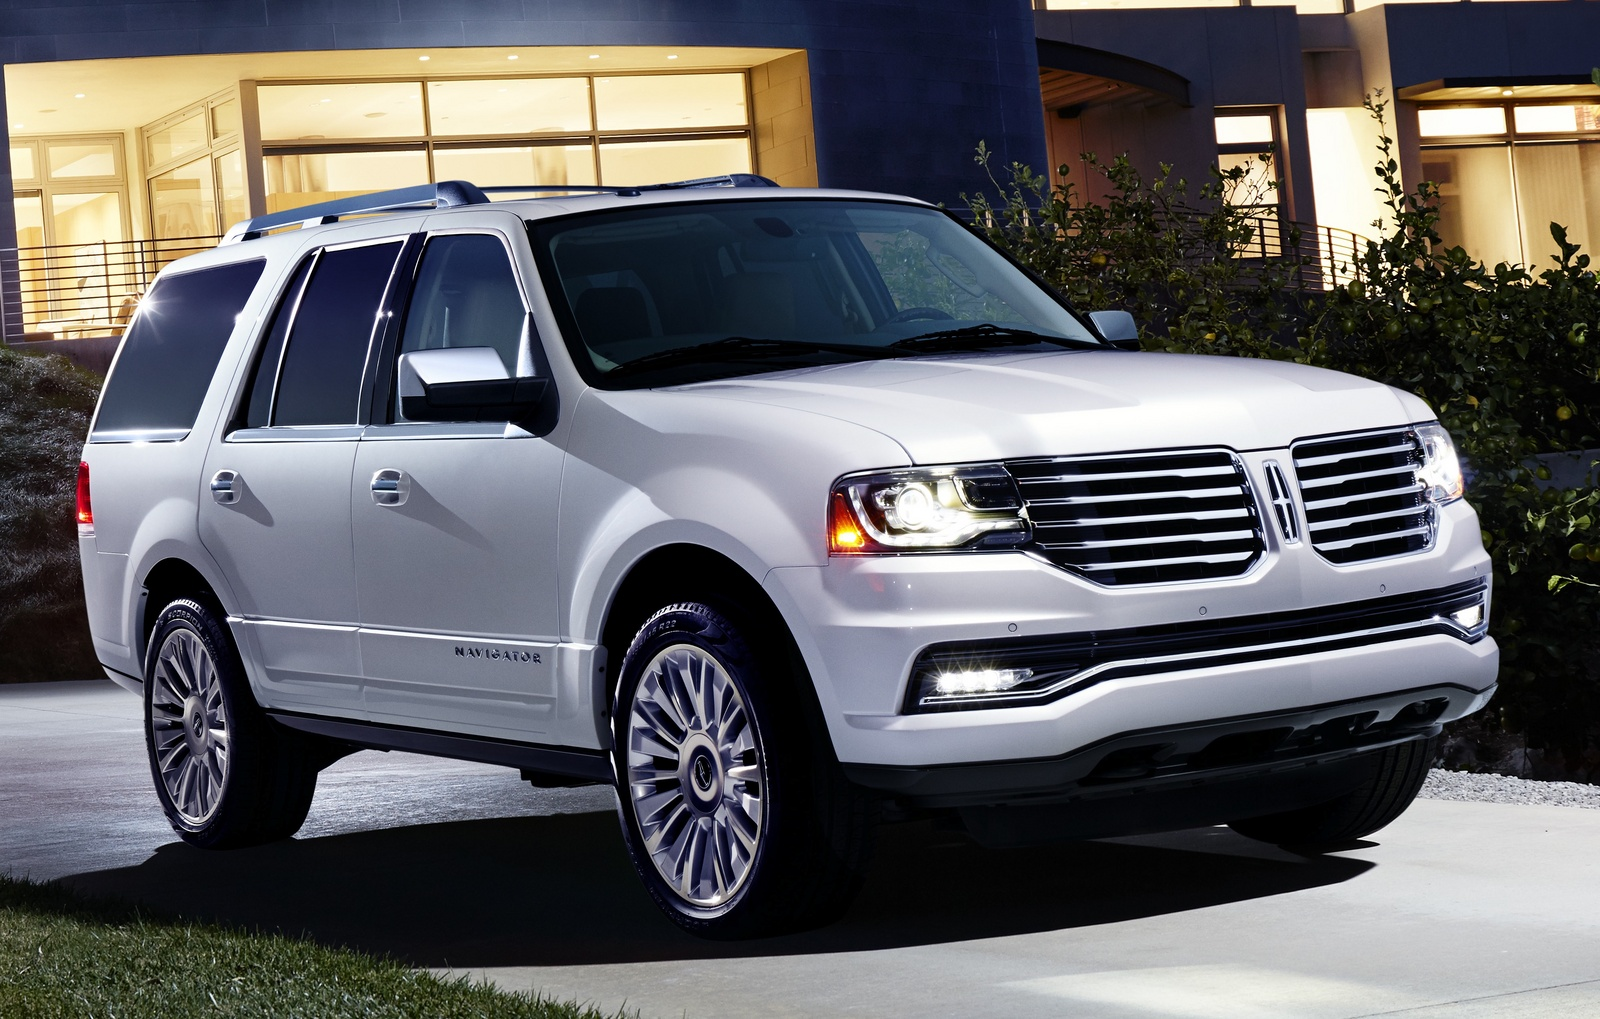 Oscar Insurance Reviews >> Lincoln Aviator 2015: Review, Amazing Pictures and Images – Look at the car